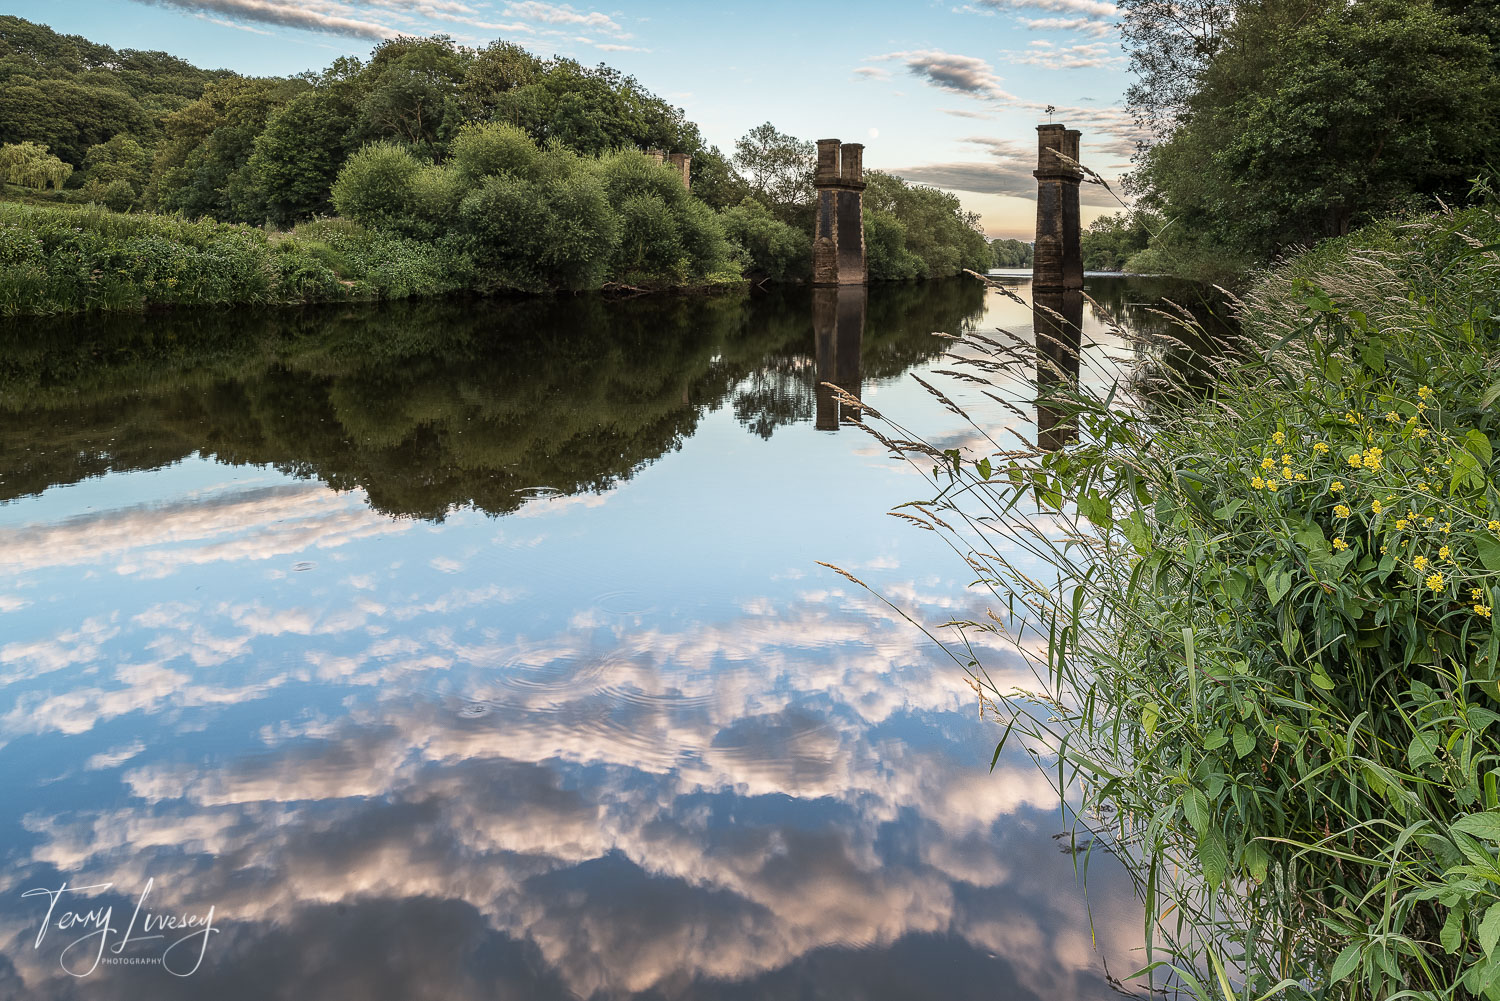 Just down the river from Bewdley, towards Arley, is the Dowles bridge which is an old, part-dismantled railway bridge which remains like a monument to the local history or the area.